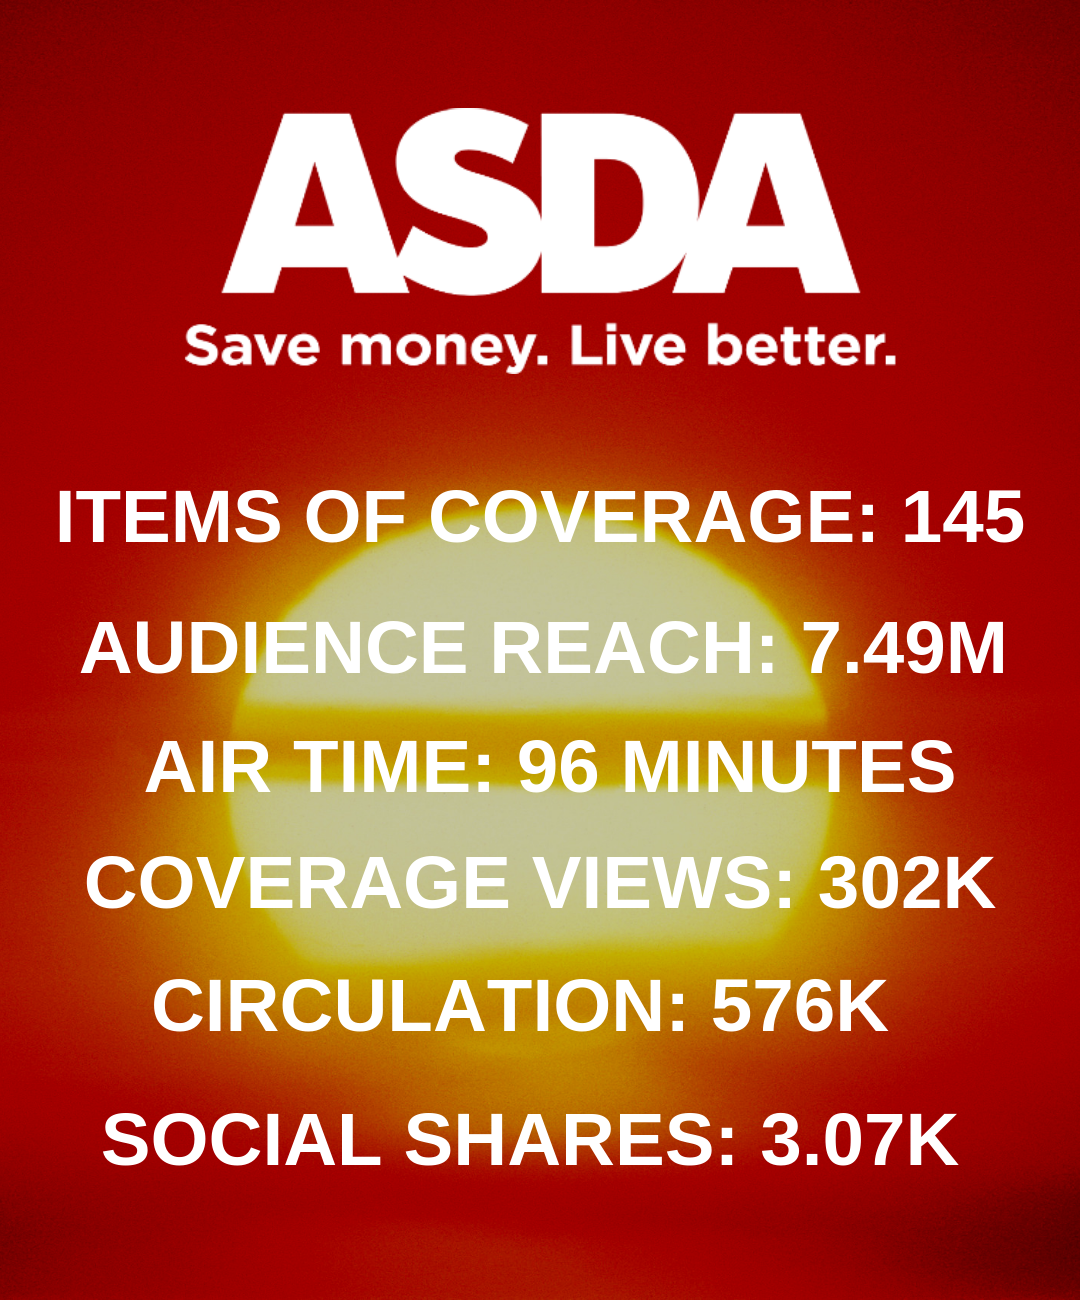 Campaign Stats from Asda Integrated Campaign